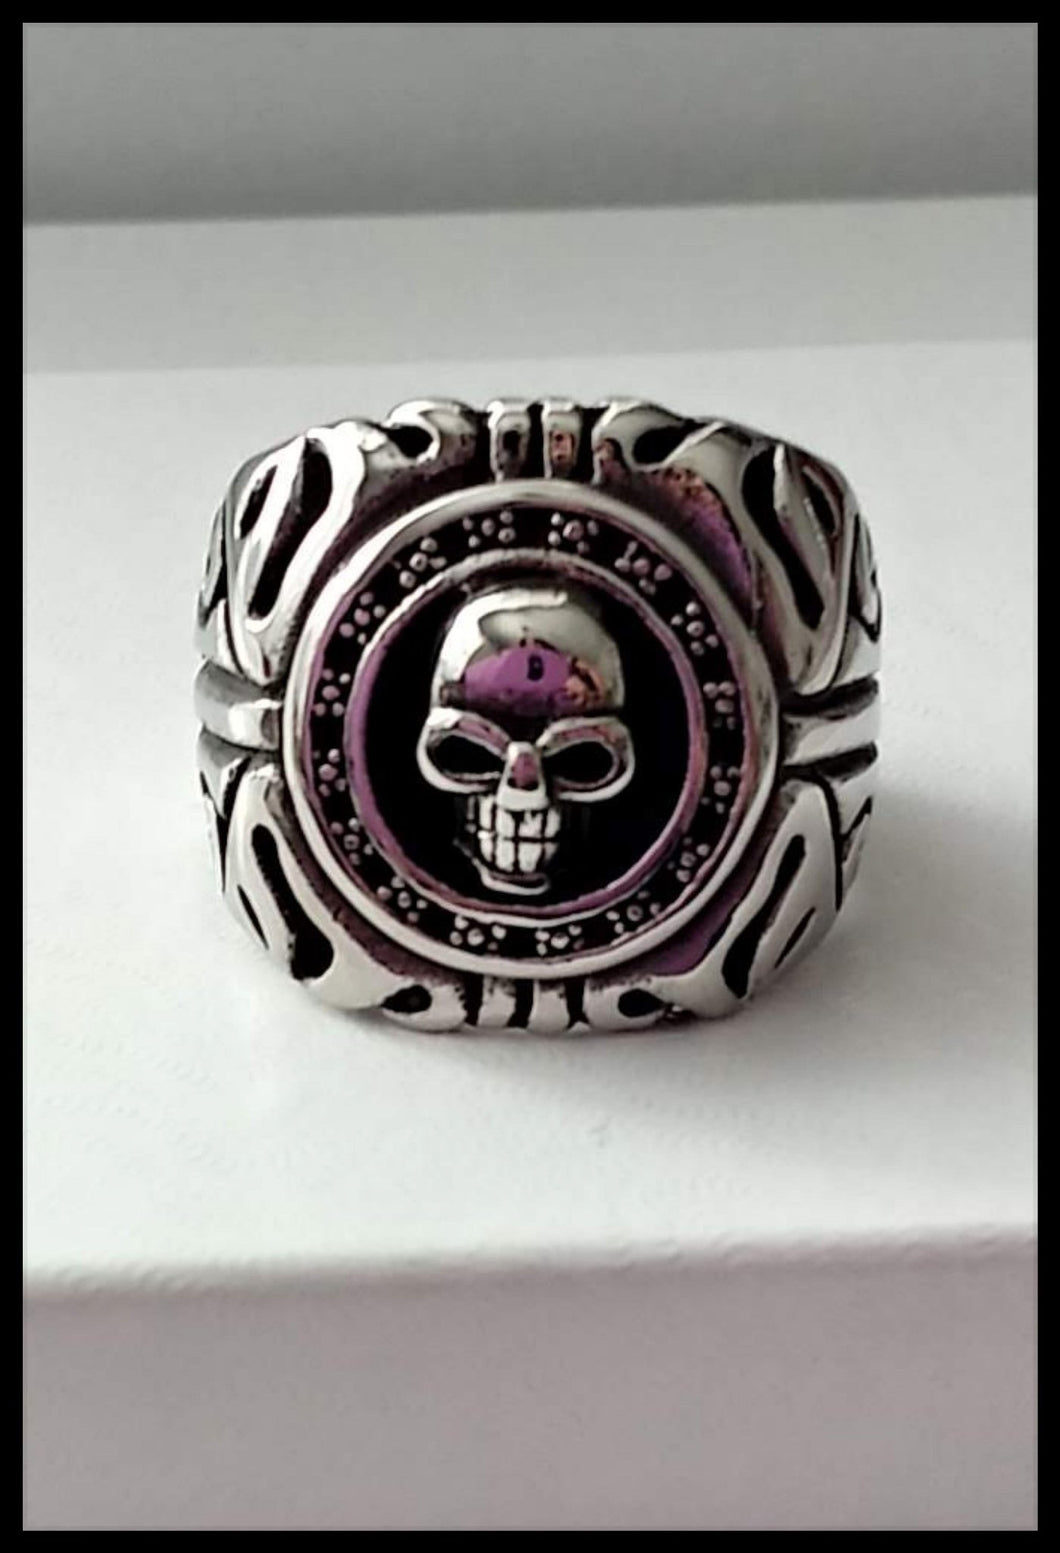 Mens Ring Biker Skull -Stainless Steel Ring - The Bong Czar online Smokeshop